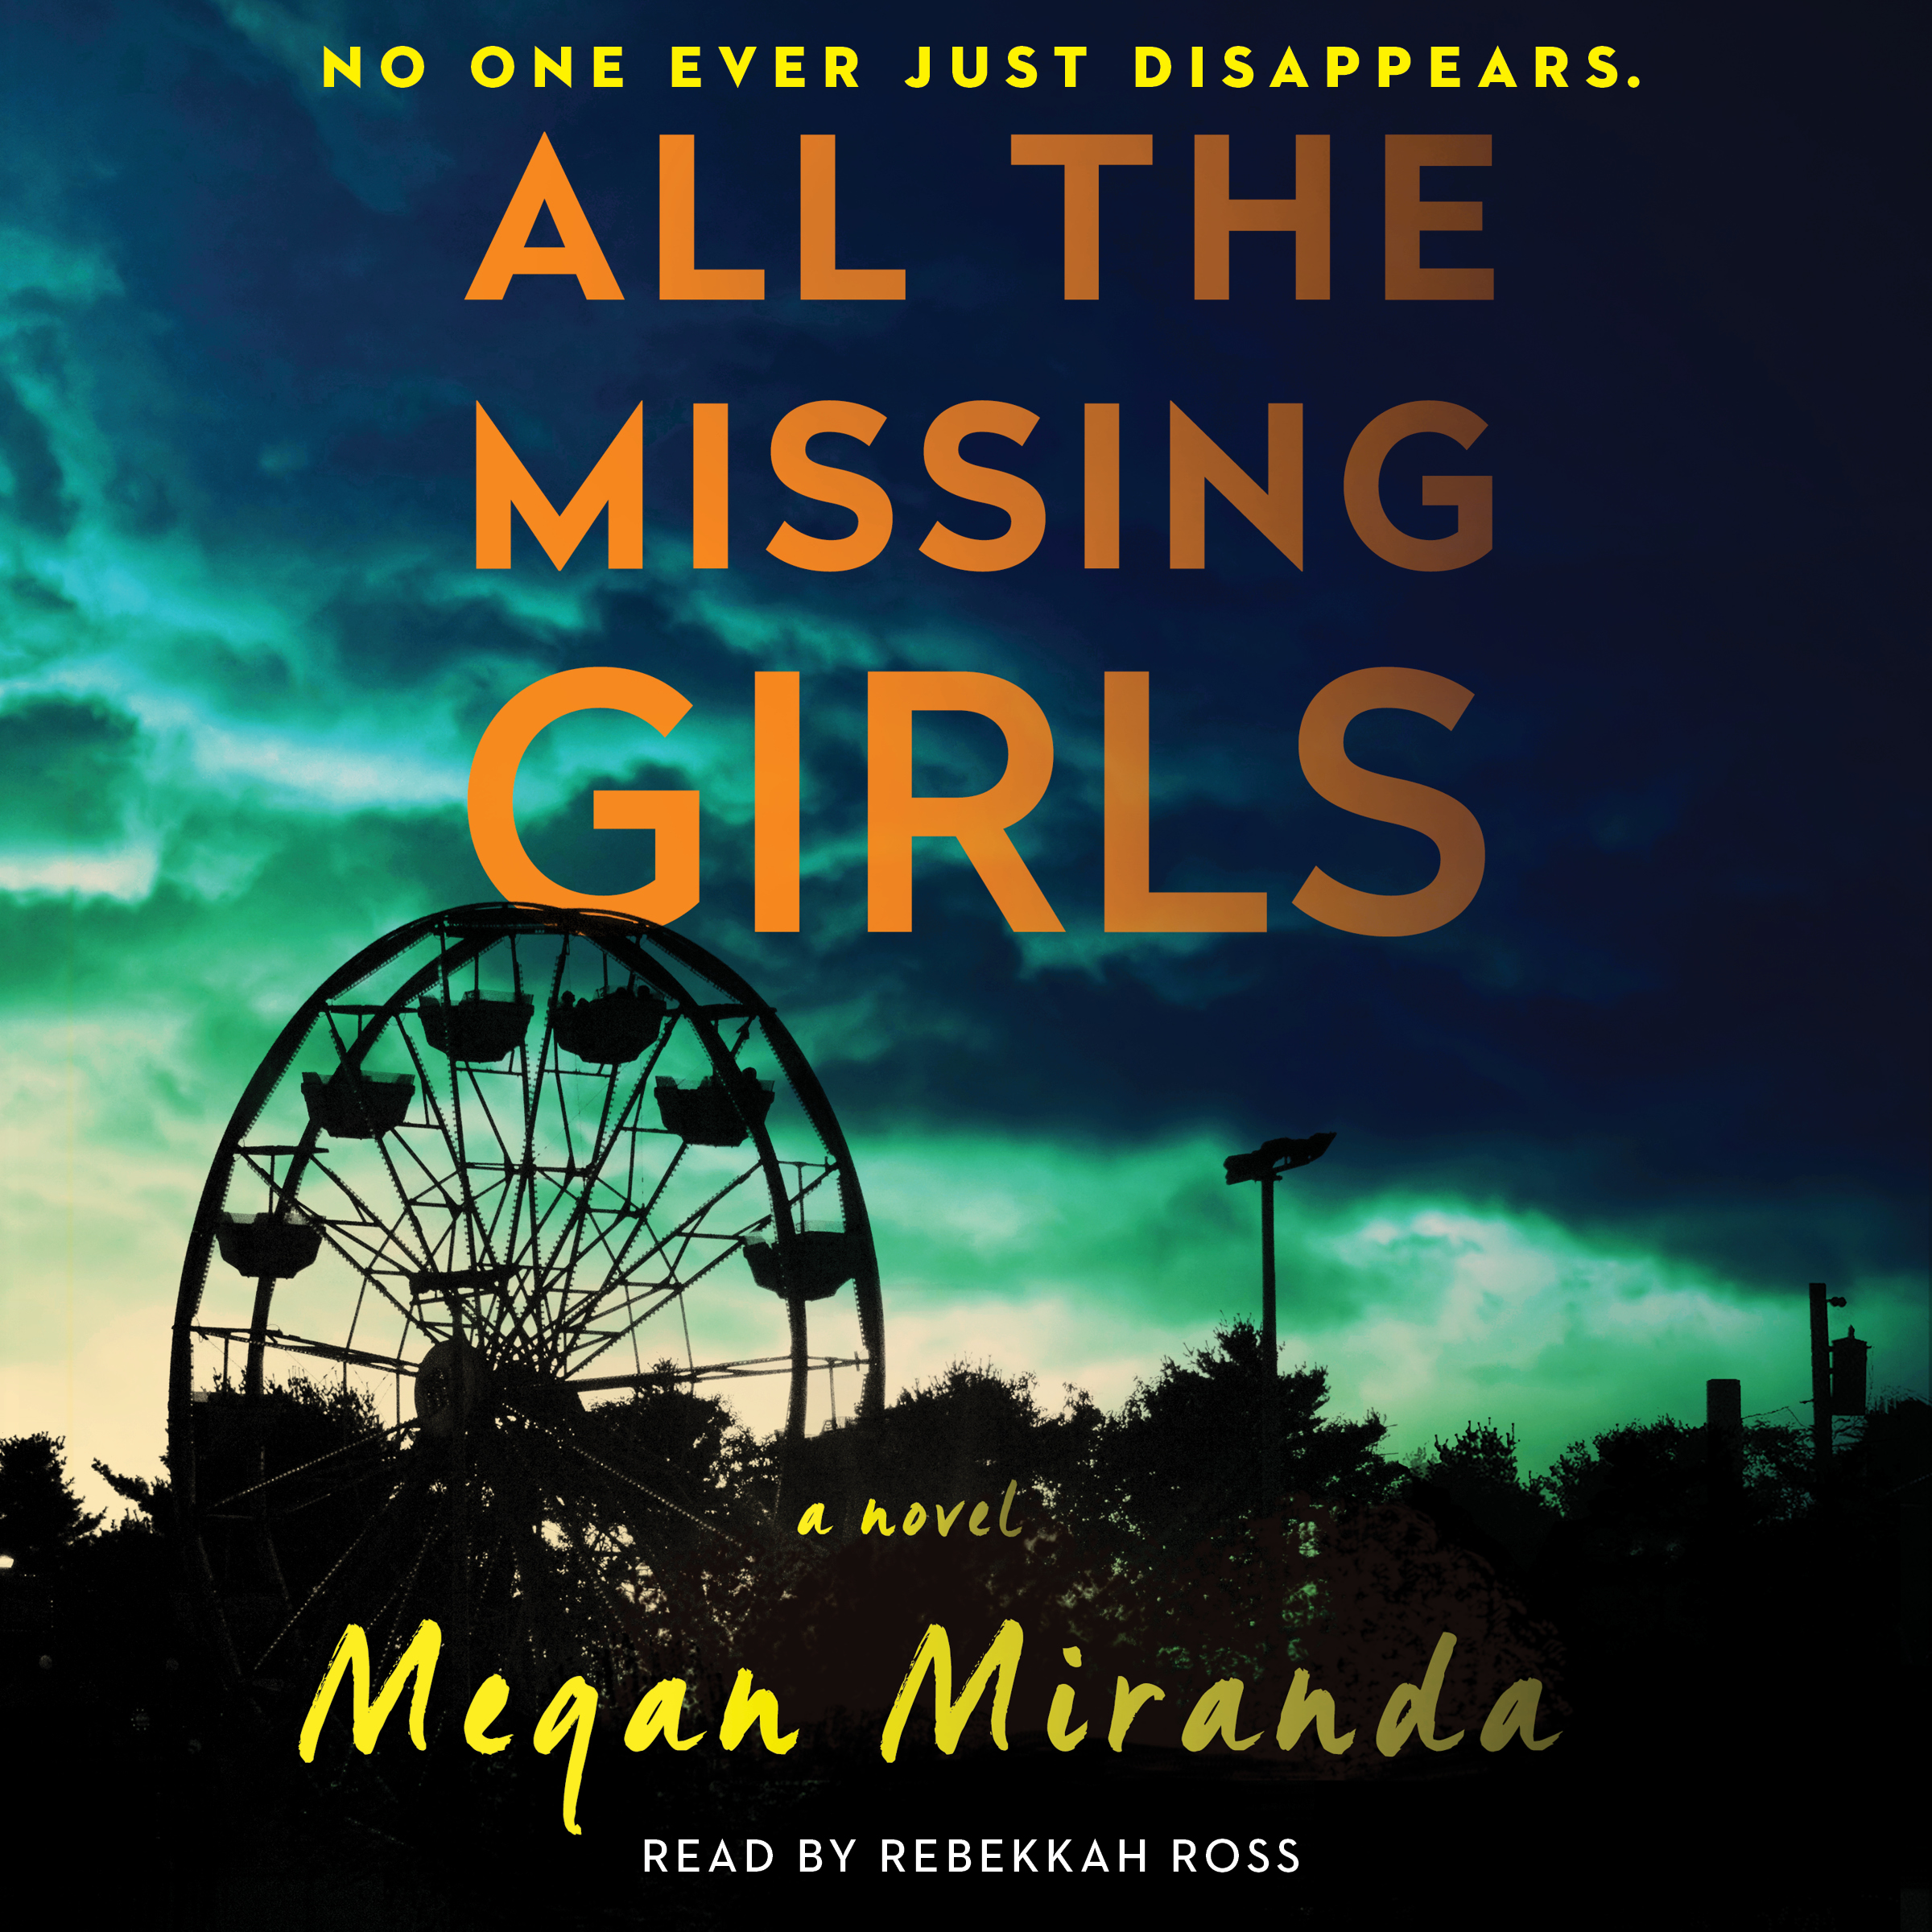 All the missing girls 9781508211891 hr